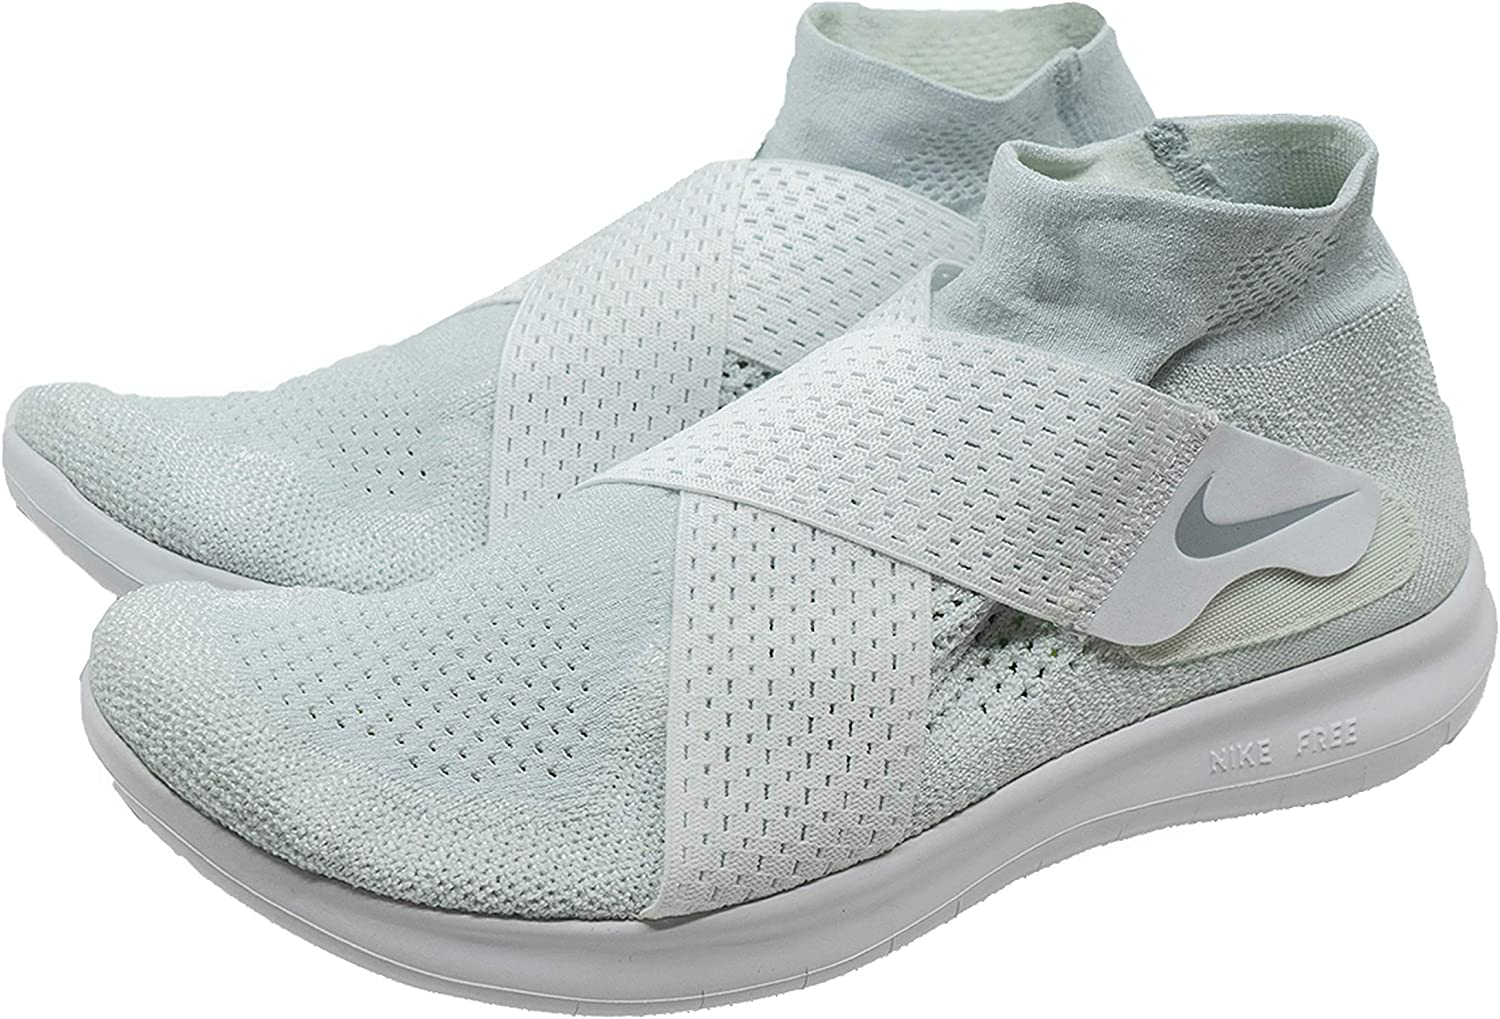 Nike Men s Free RN Motion Flyknit 2017 Running Shoe White Wolf Grey-Pure Platinum-Volt 10.0